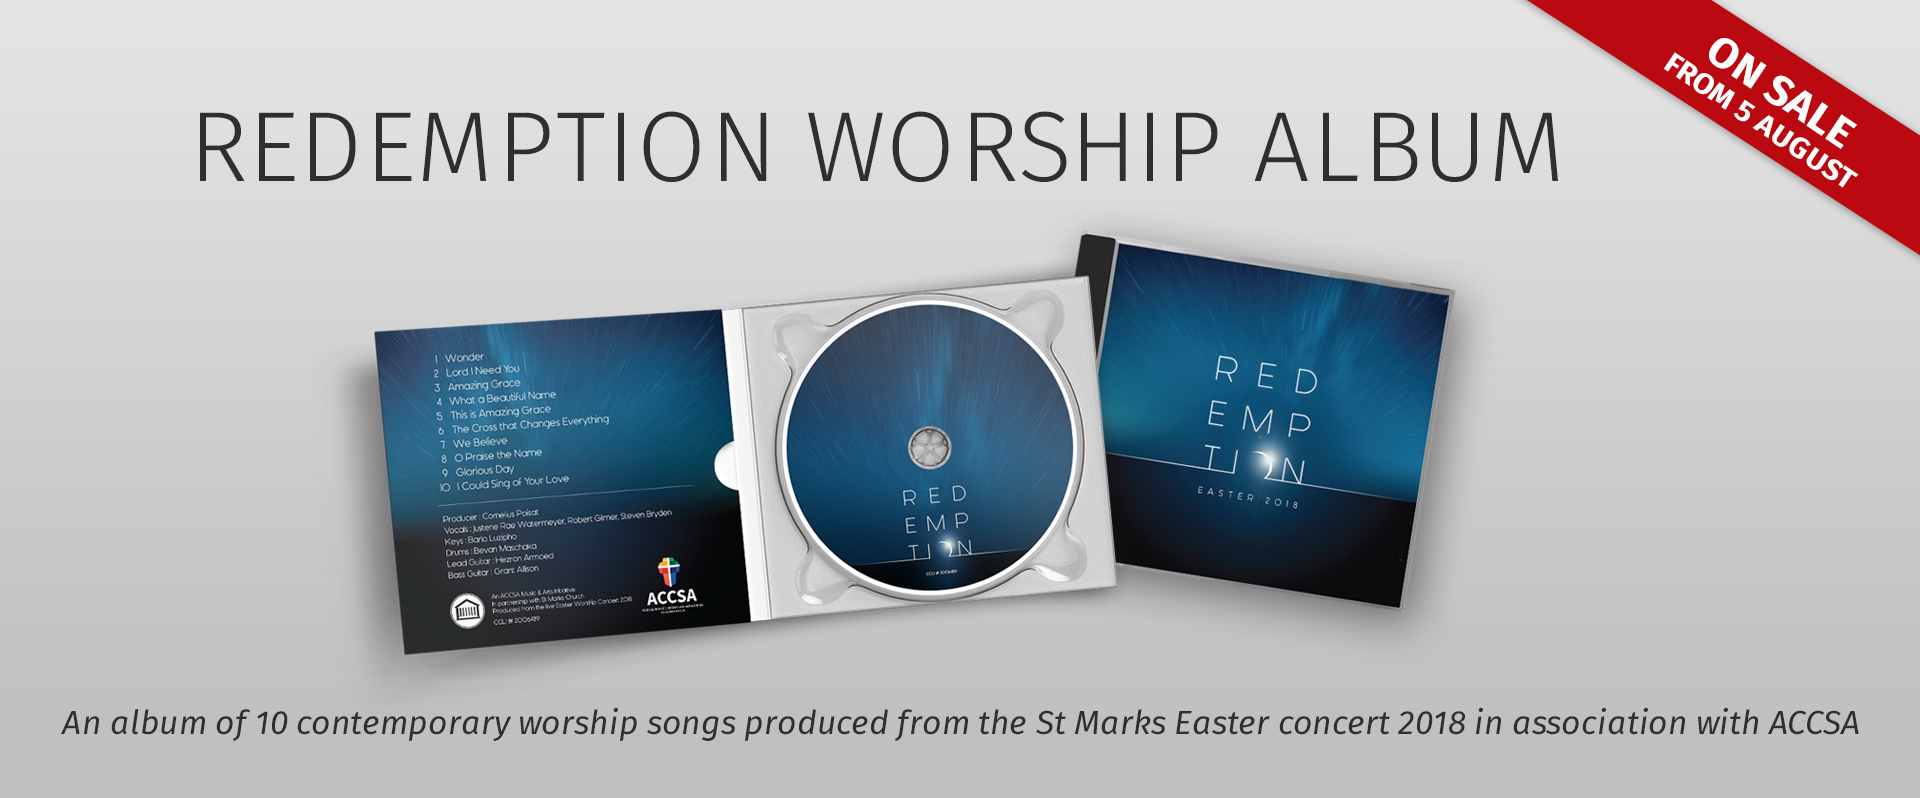 Website-Slider---Redemption-CD